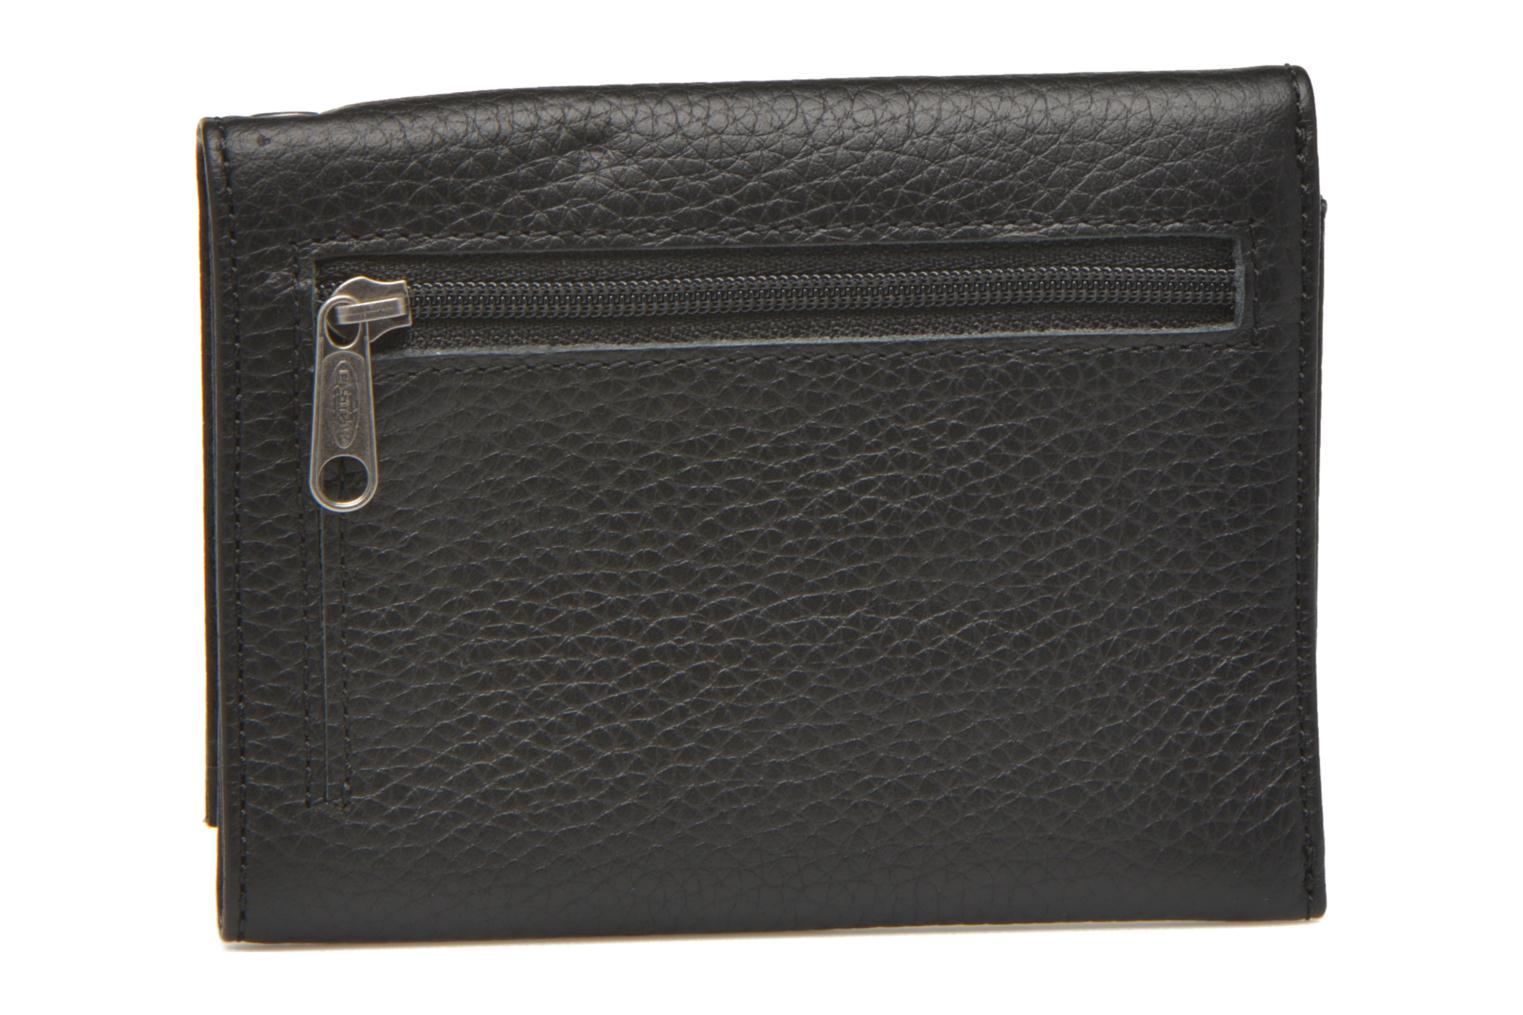 CREW Portefeuille cuir Black leather